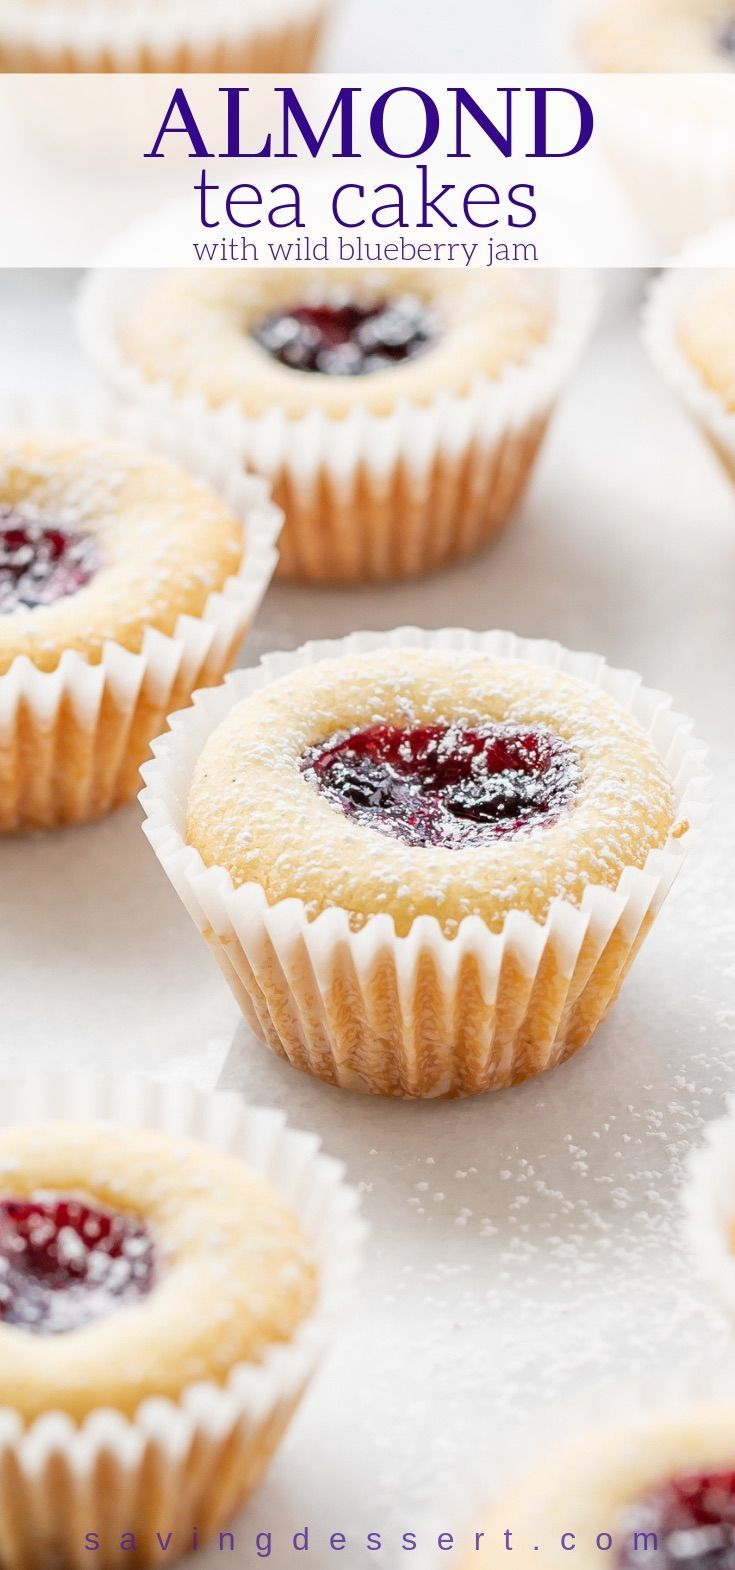 Almond Tea Cakes with Wild Blueberry Jam  tender little buttery gems with great texture and loads of flavor from the almond extract and almond flour 56787645291163633